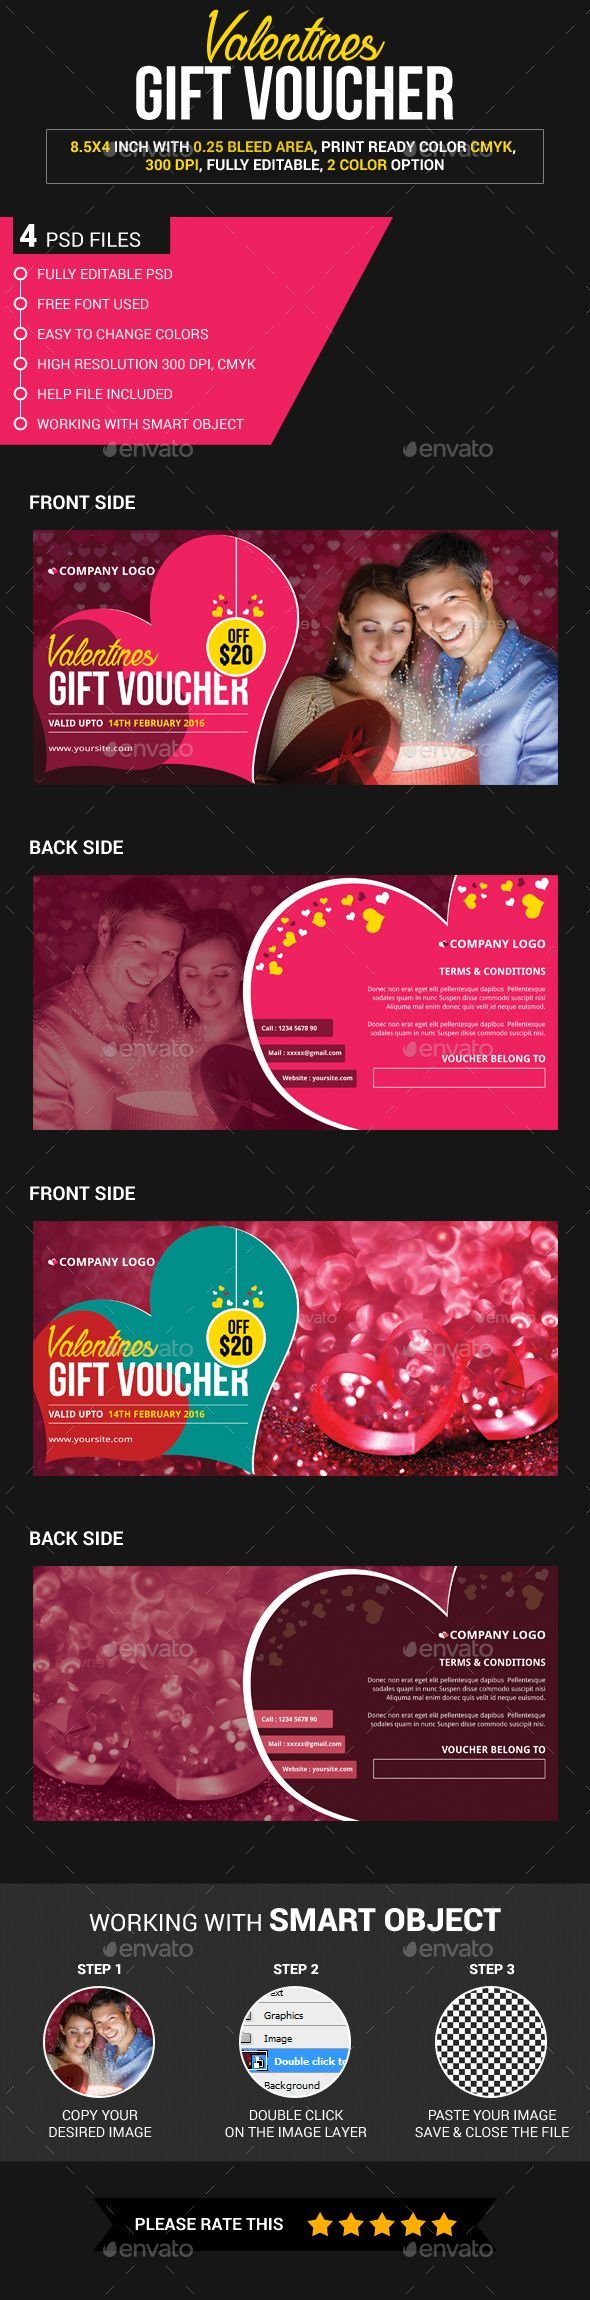 The 25 best voucher template free ideas on pinterest free gift this is a valentine gift voucher which is fully editable pack included 4 psd xflitez Choice Image